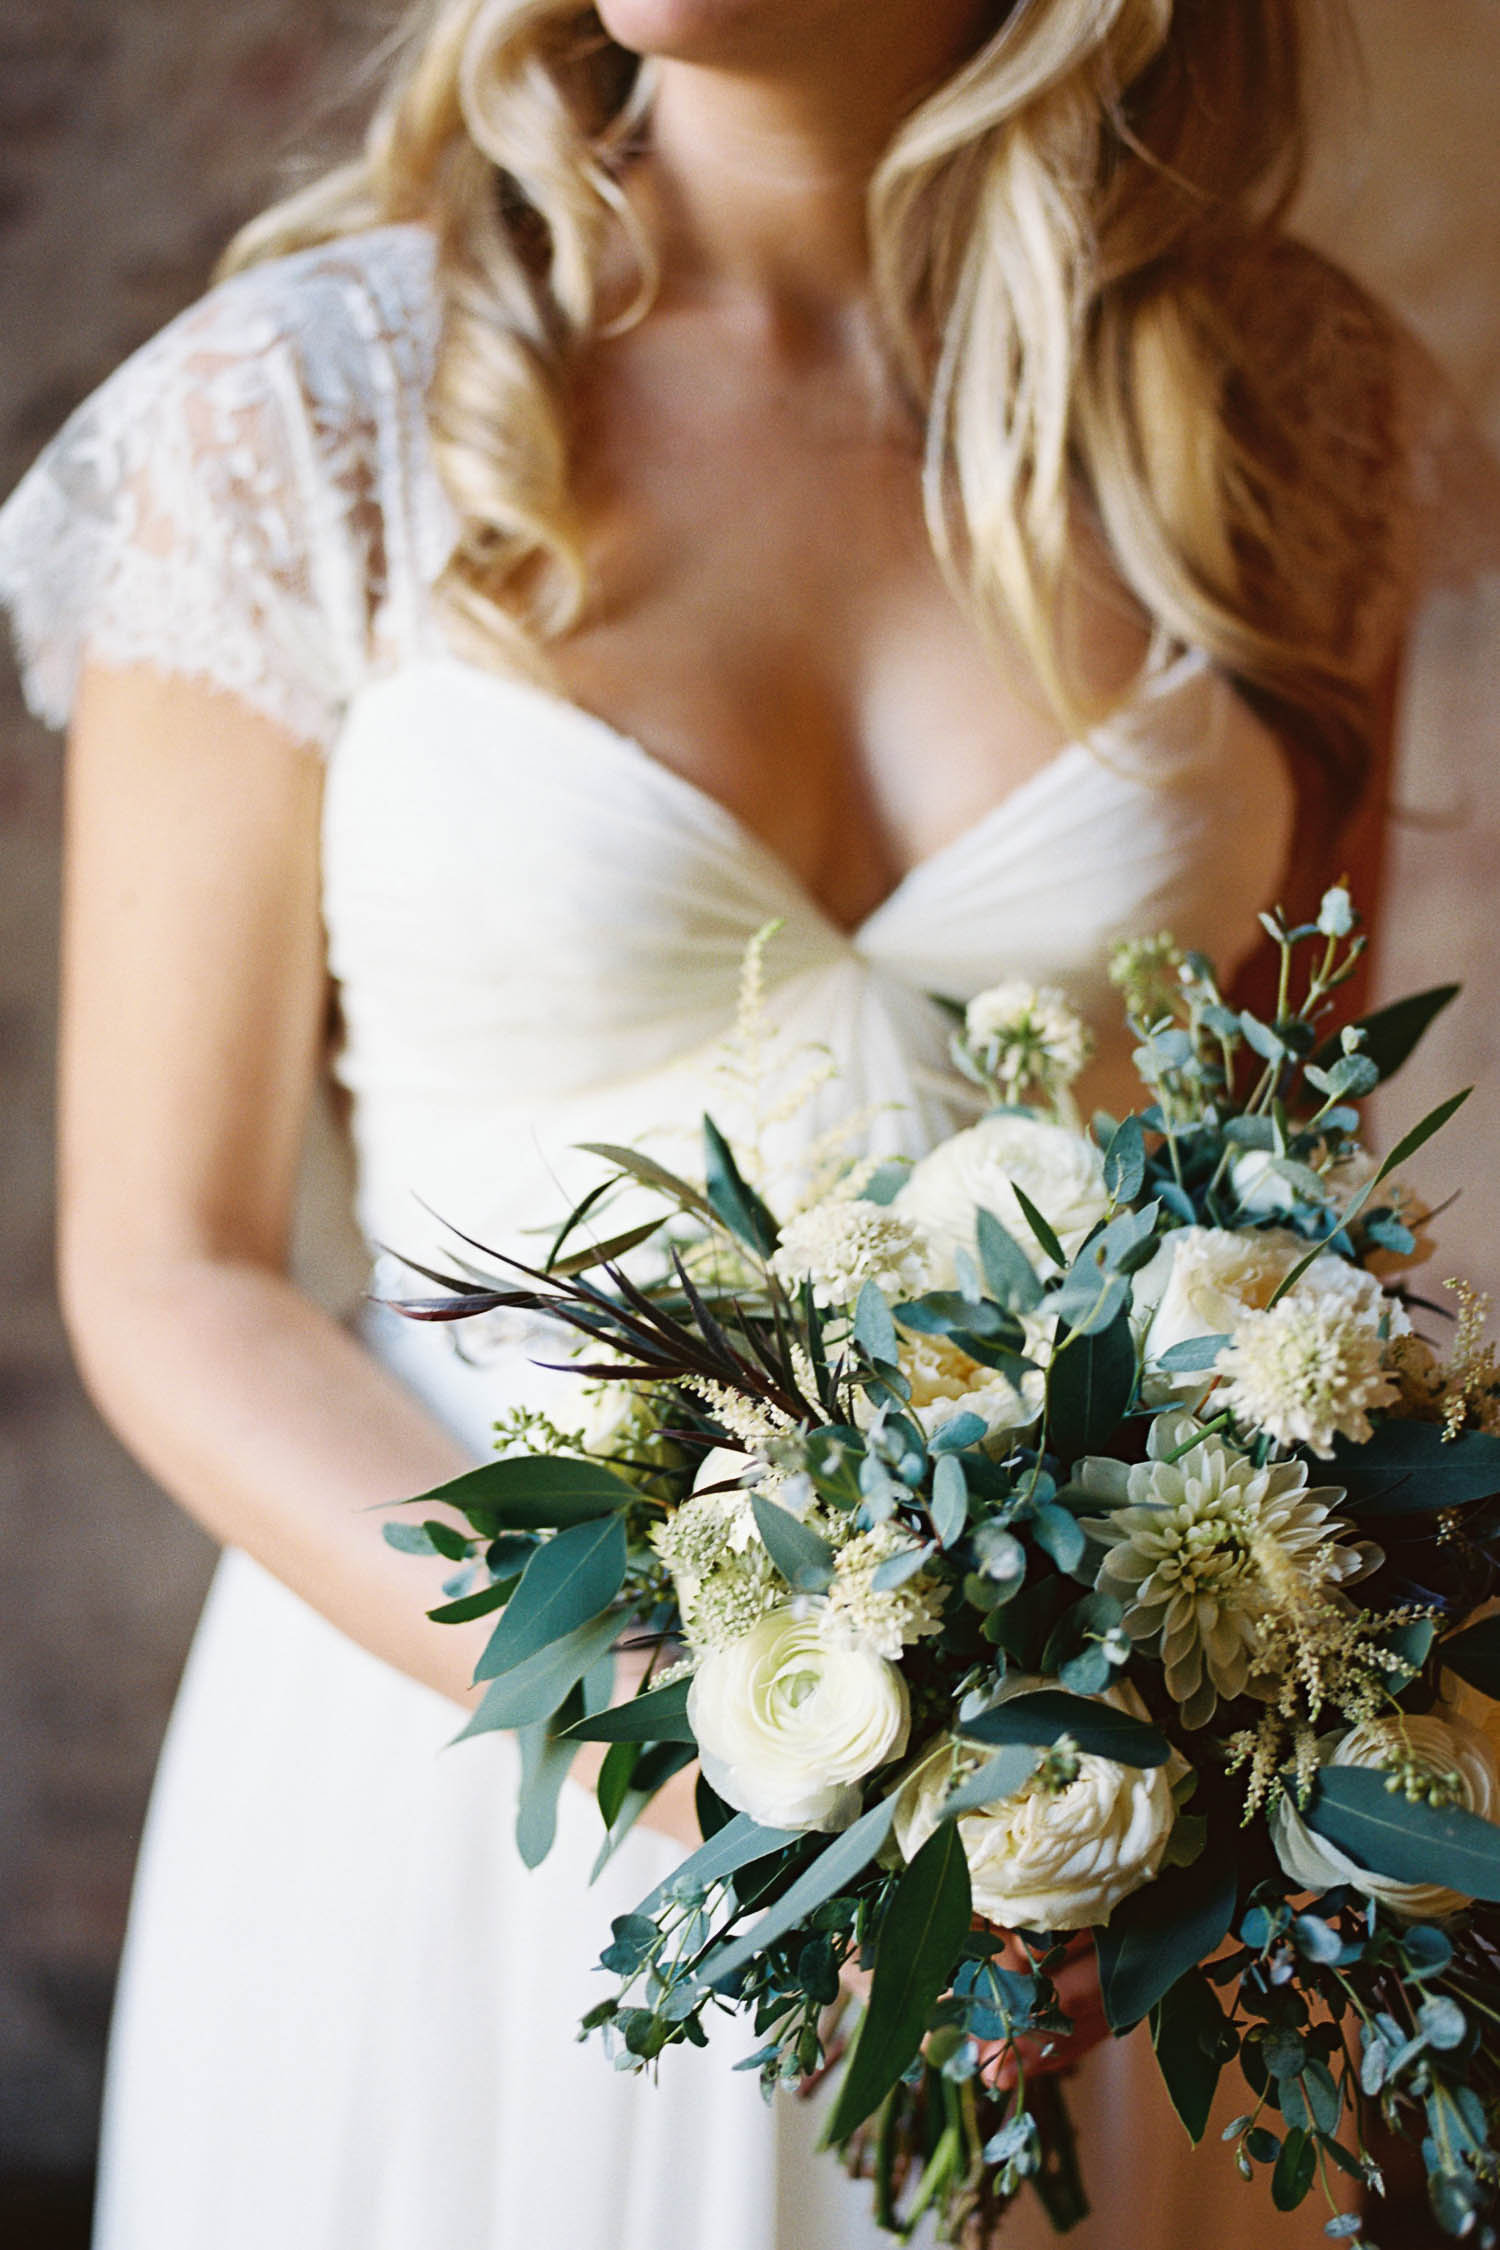 Loose, natural bridal bouquet of greenery and ivory flowers